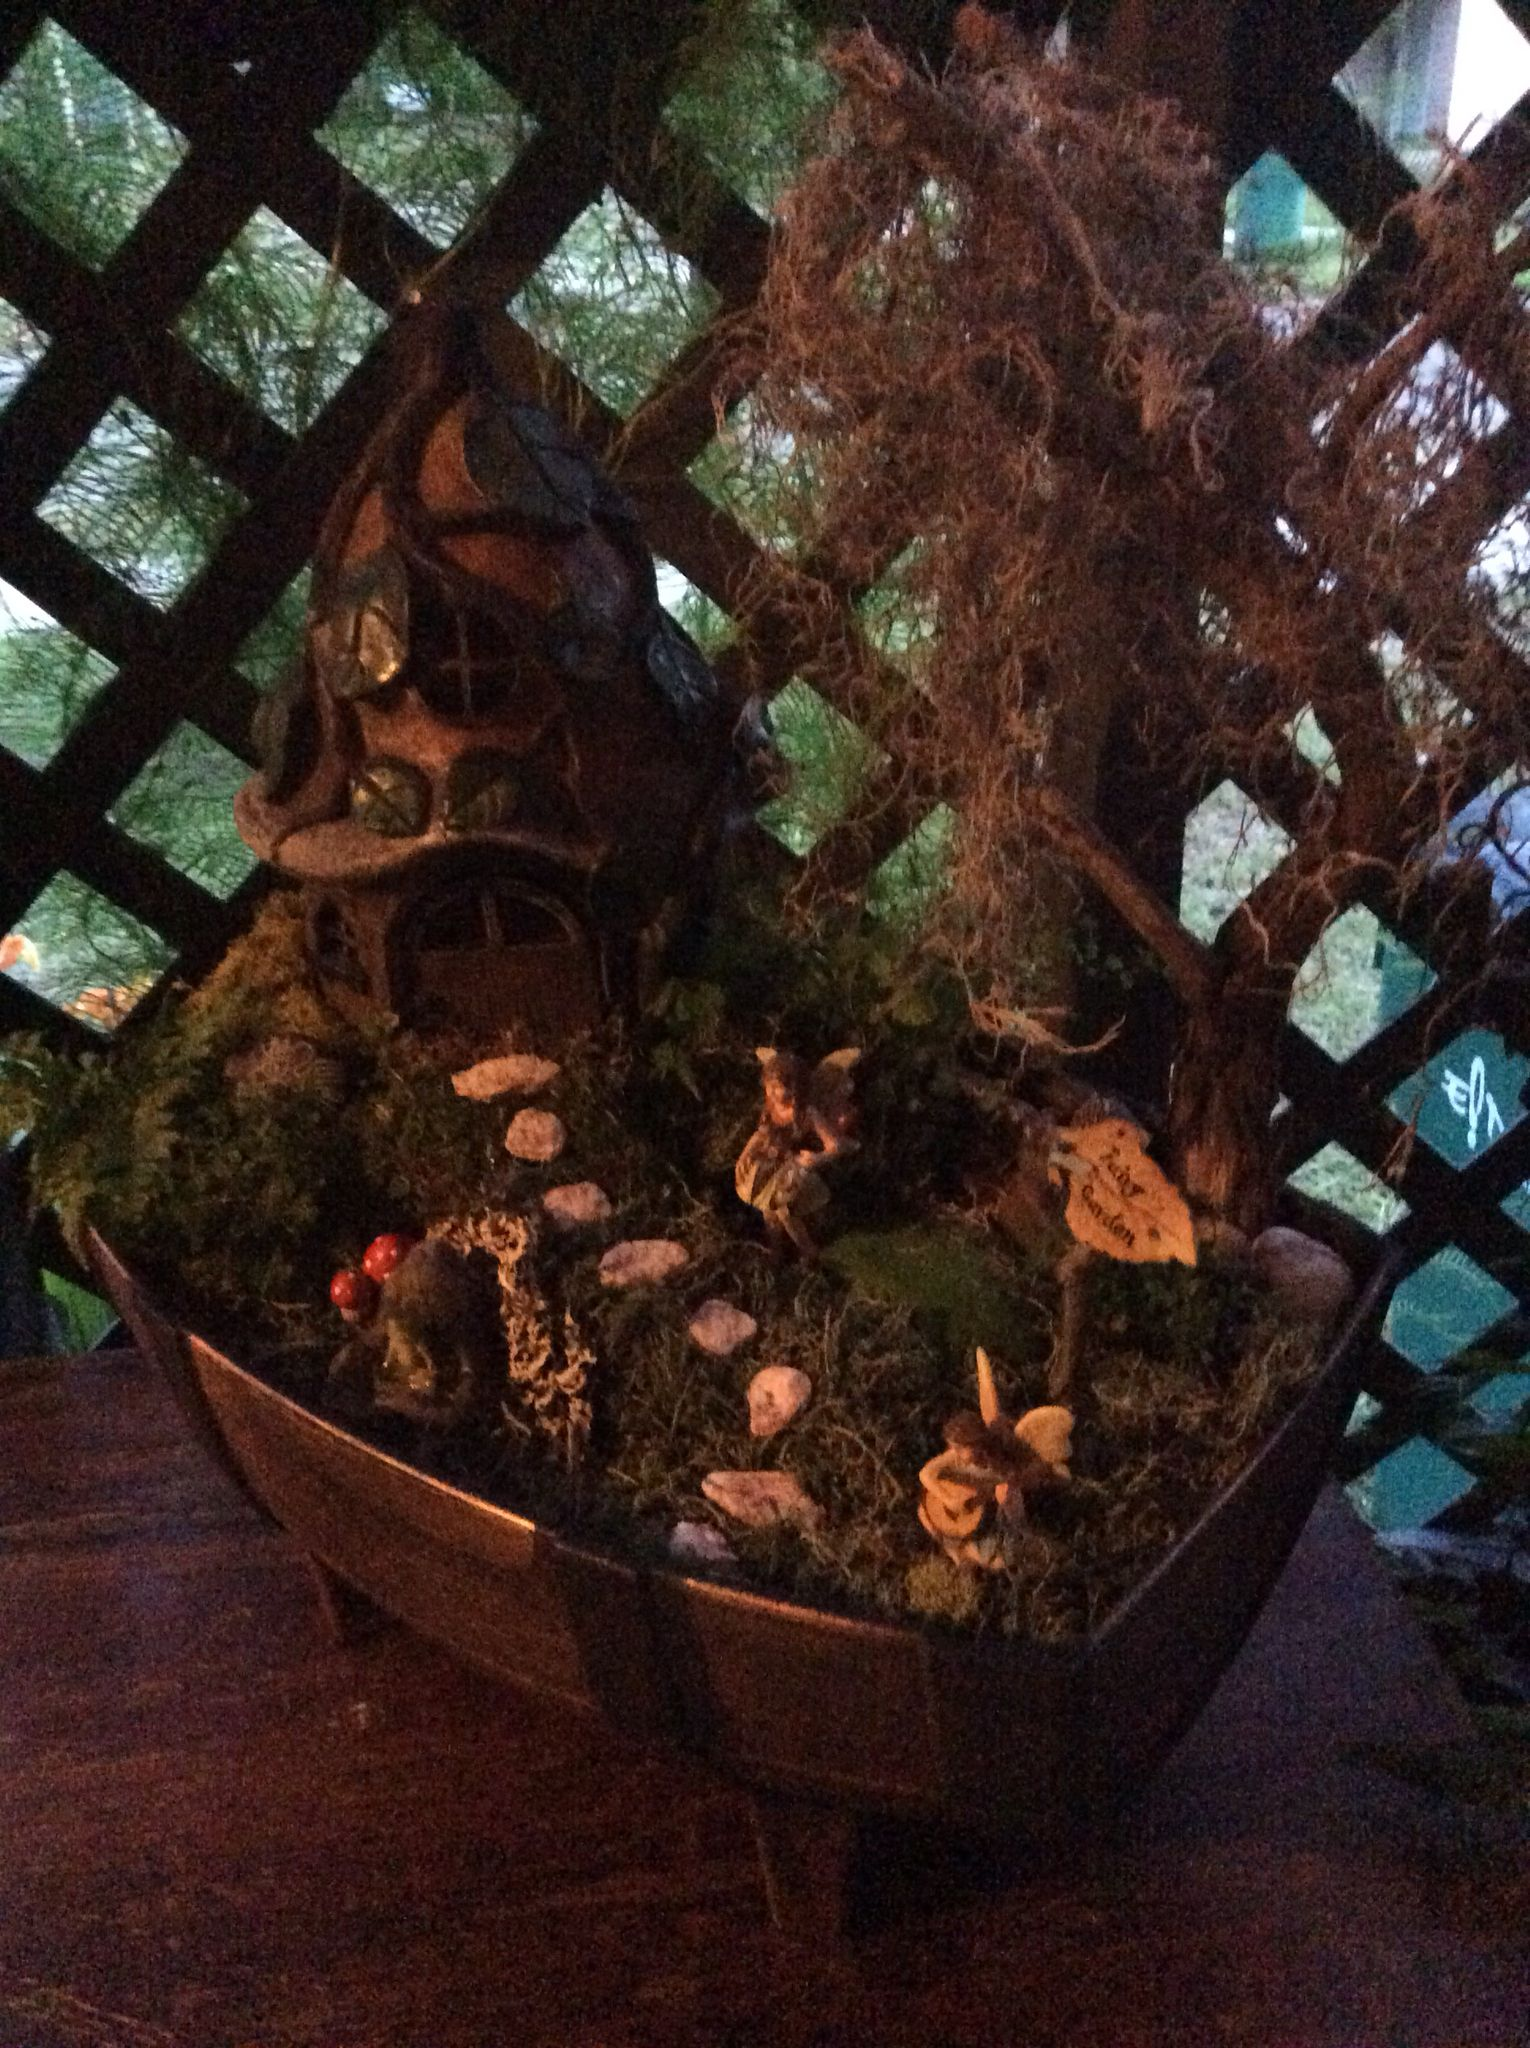 My first fairy garden - learned that anyone can do this and it's fun!